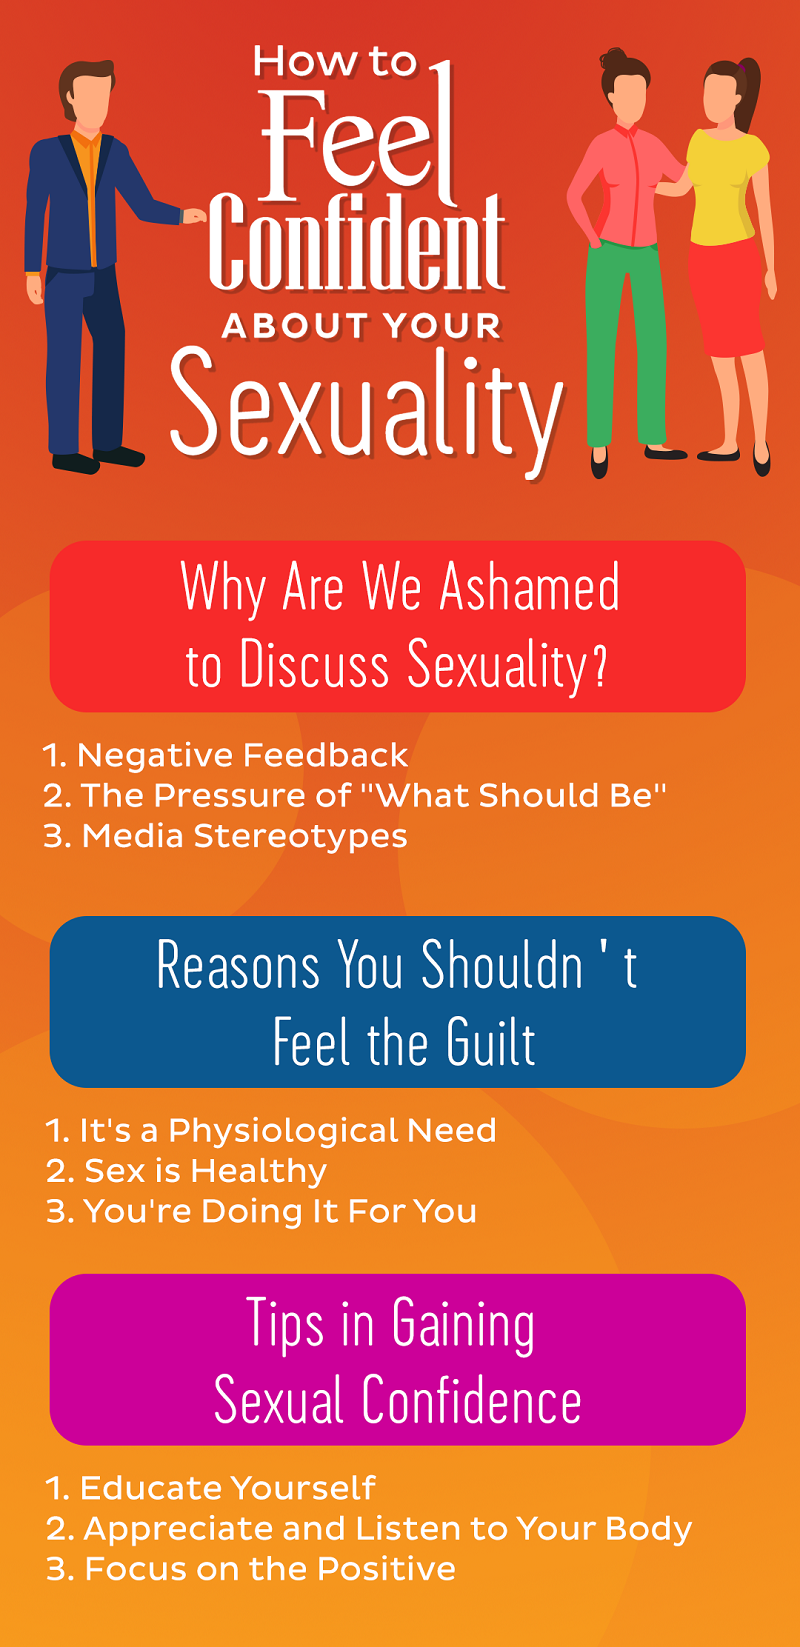 How to Feel Confident About Your Sexuality Infographic - Randy Fox